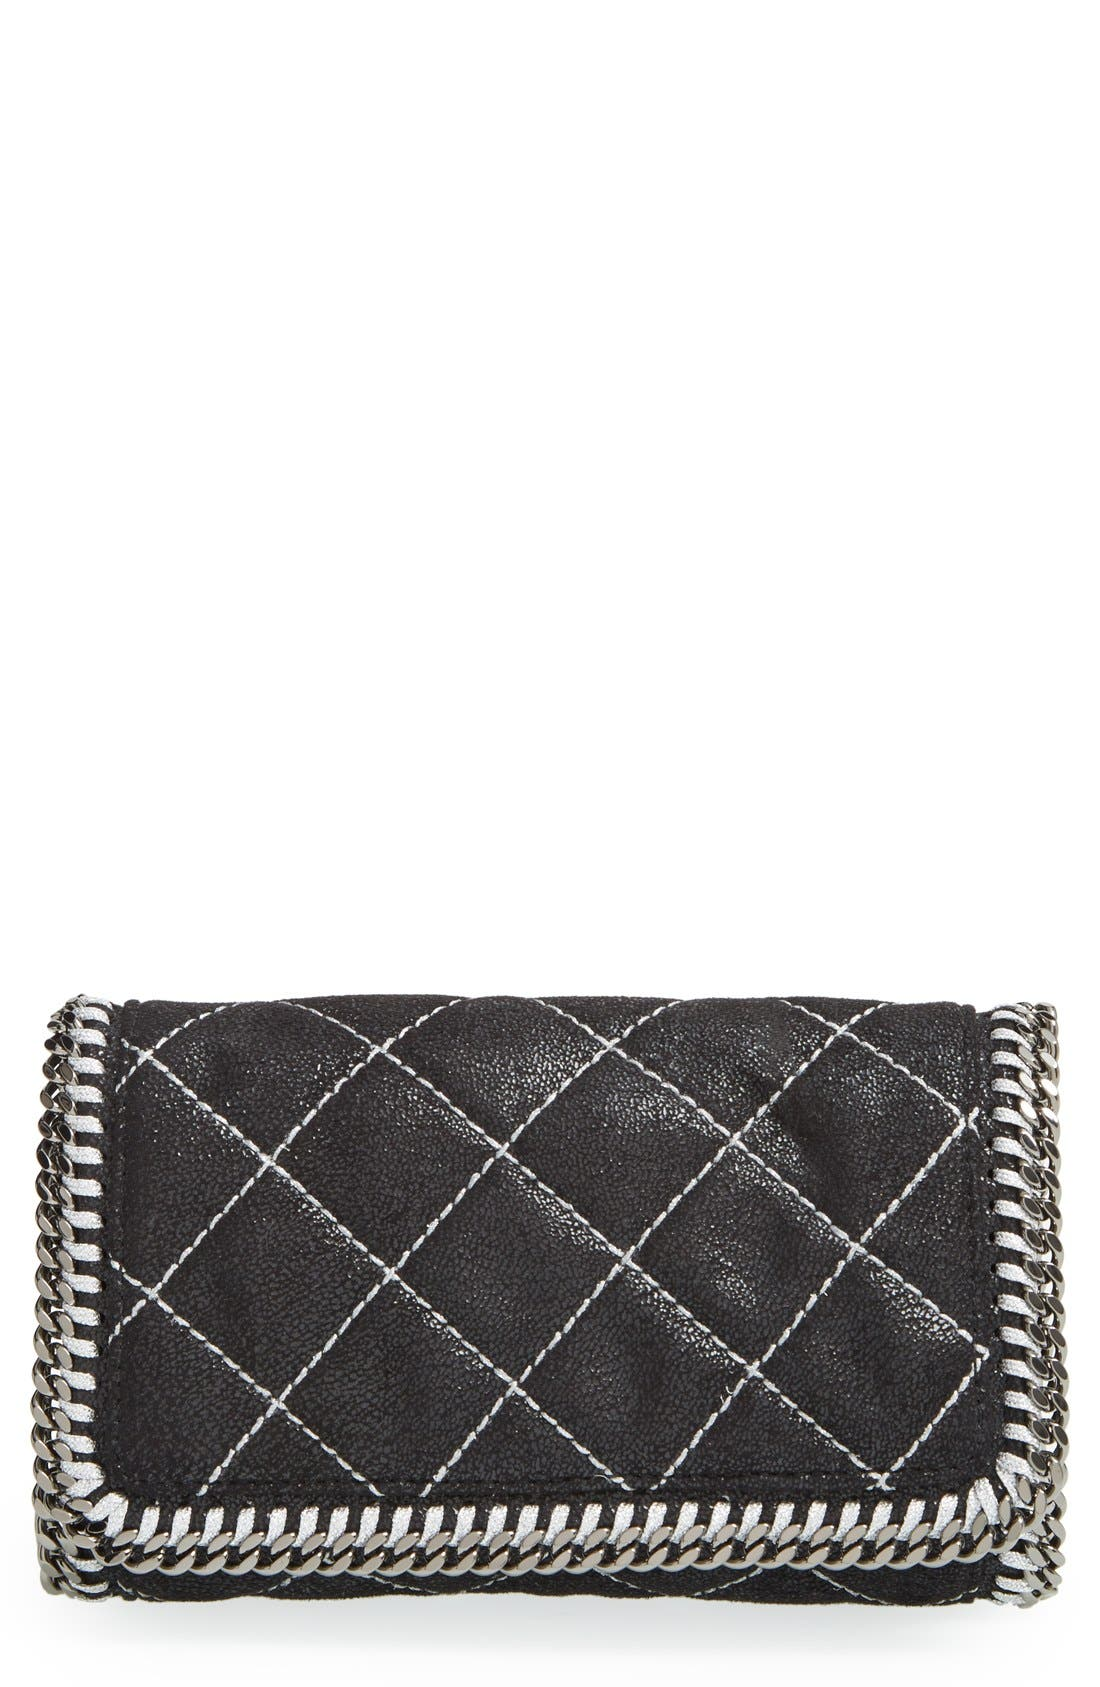 'Falabella' Quilted Faux Leather Crossbody Bag,                             Main thumbnail 2, color,